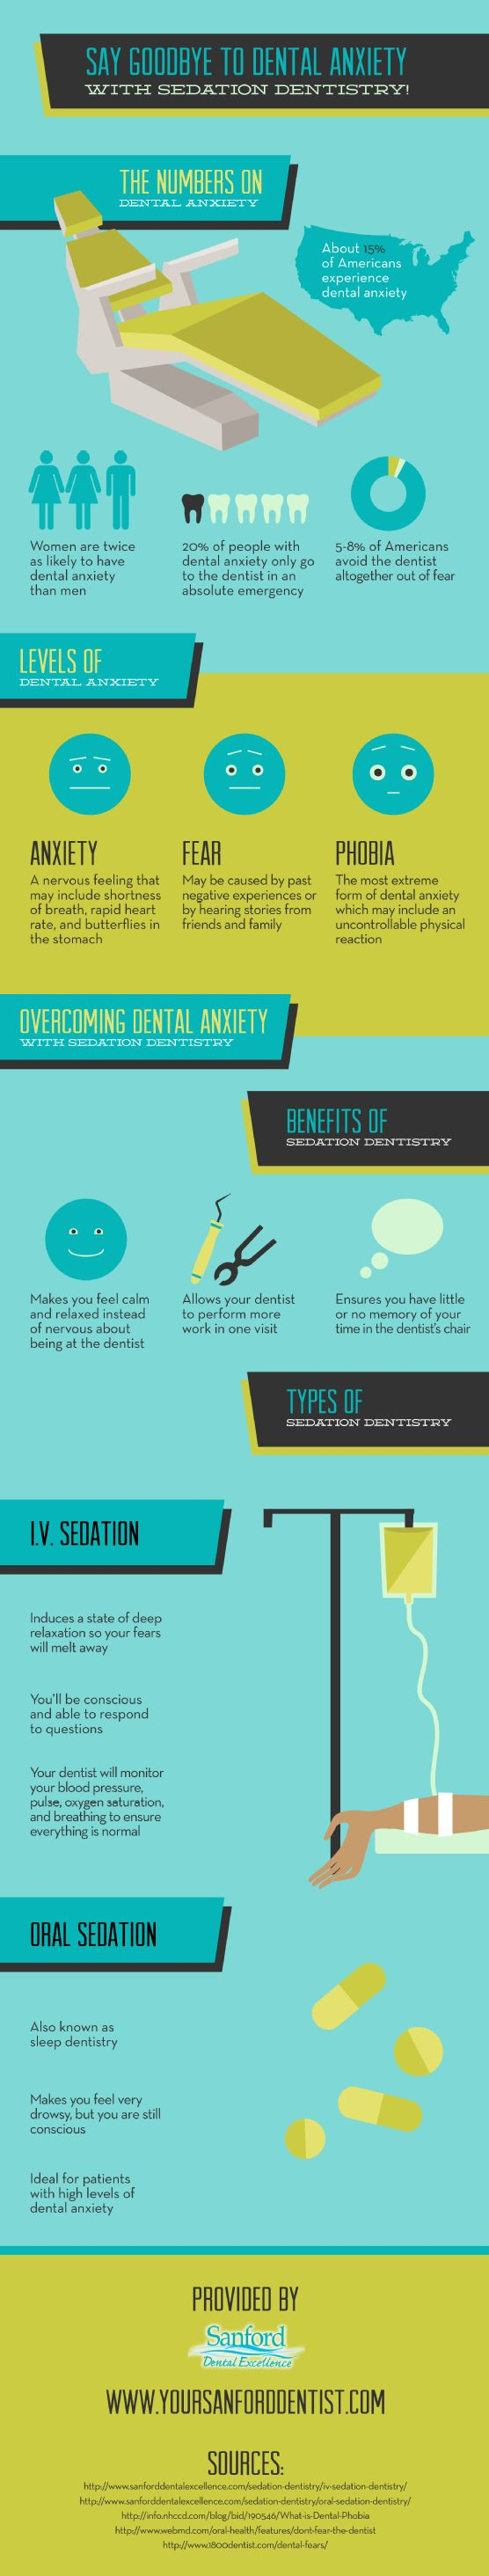 Say Goodbye To Dental Anxiety With Sedation Dentistry [INFOGRAPHIC] #dental #anxiety #sedationdentistry